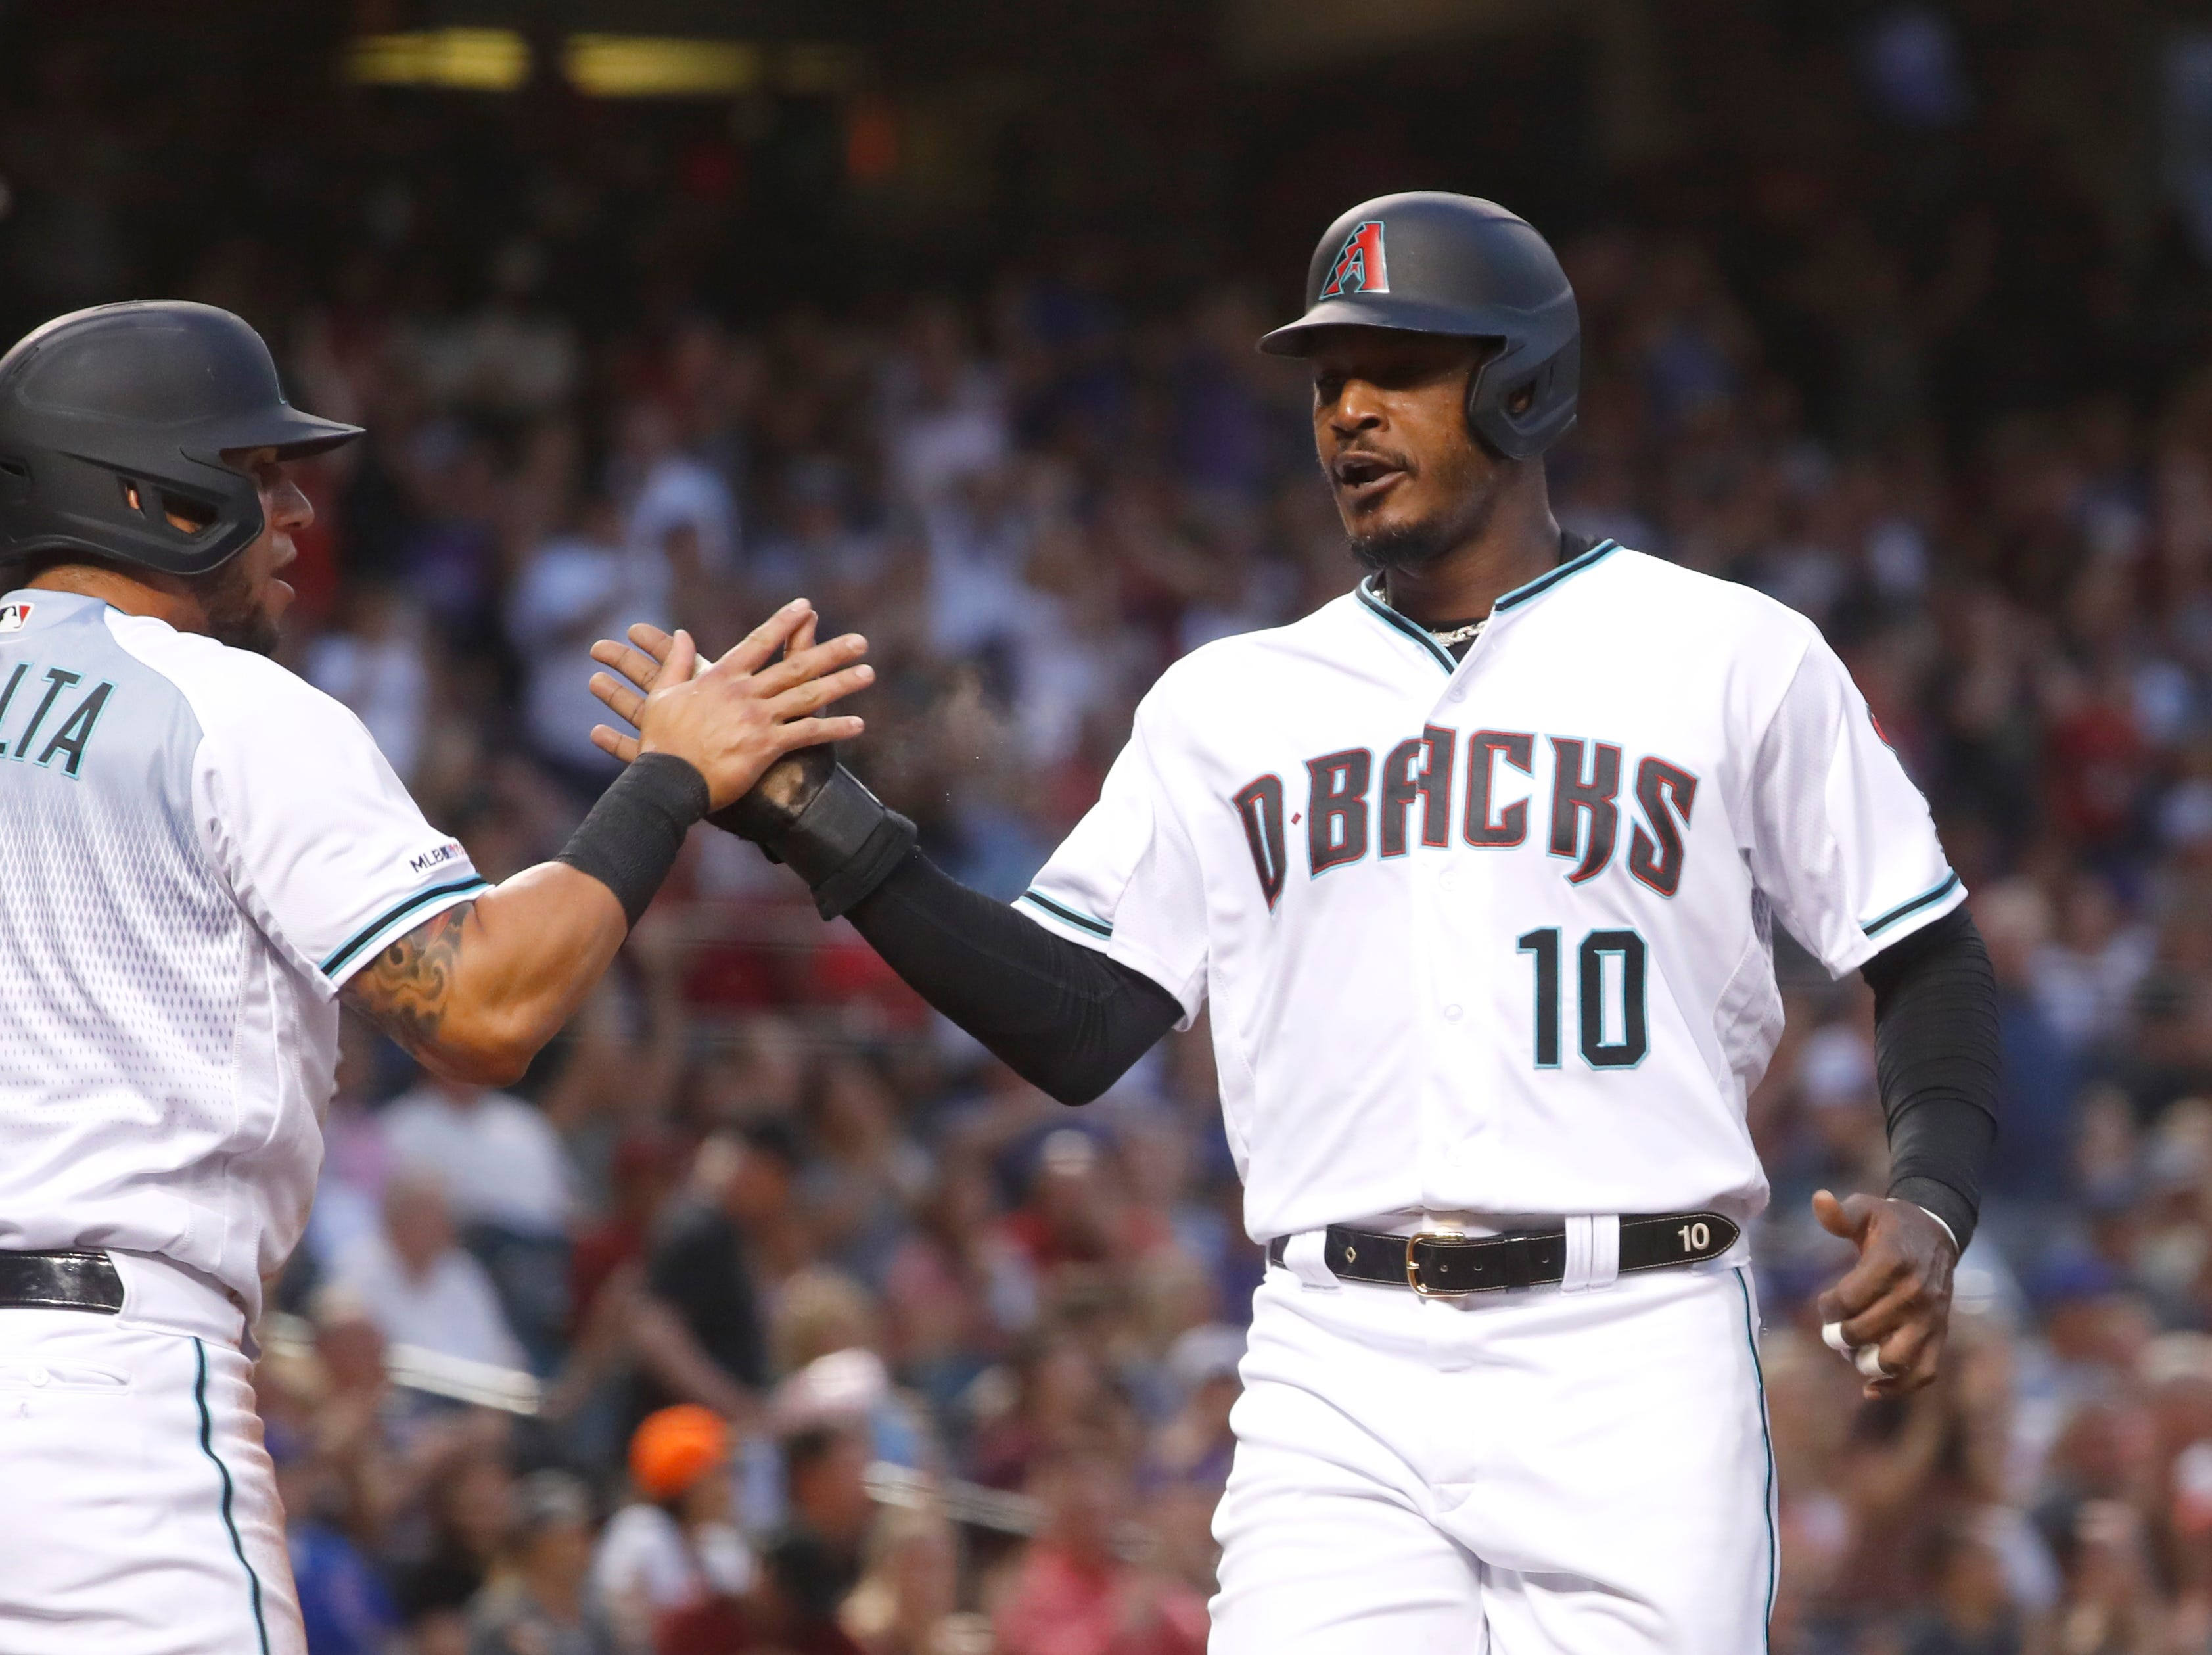 Diamondbacks' Adam Jones (10) high-fives David Peralta (6) after they scored against the Cubs during the first inning at Chase Field in Phoenix, Ariz. on April 26, 2019.